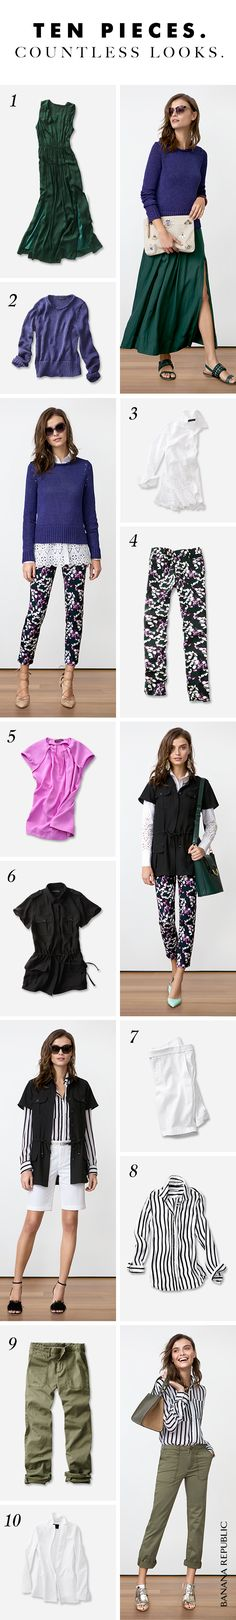 Start with 10 easy pieces and create 10 great new looks-and then some.  We've edited it down to the very best, most special and versatile pieces for spring. Floral pants, cool white shorts, easy dresses, fresh spring shirts and even a lacy blazer to mix and match. The options are endless, and suddenly, so is your spring wardrobe. Click to find more key spring pieces at Banana Republic.